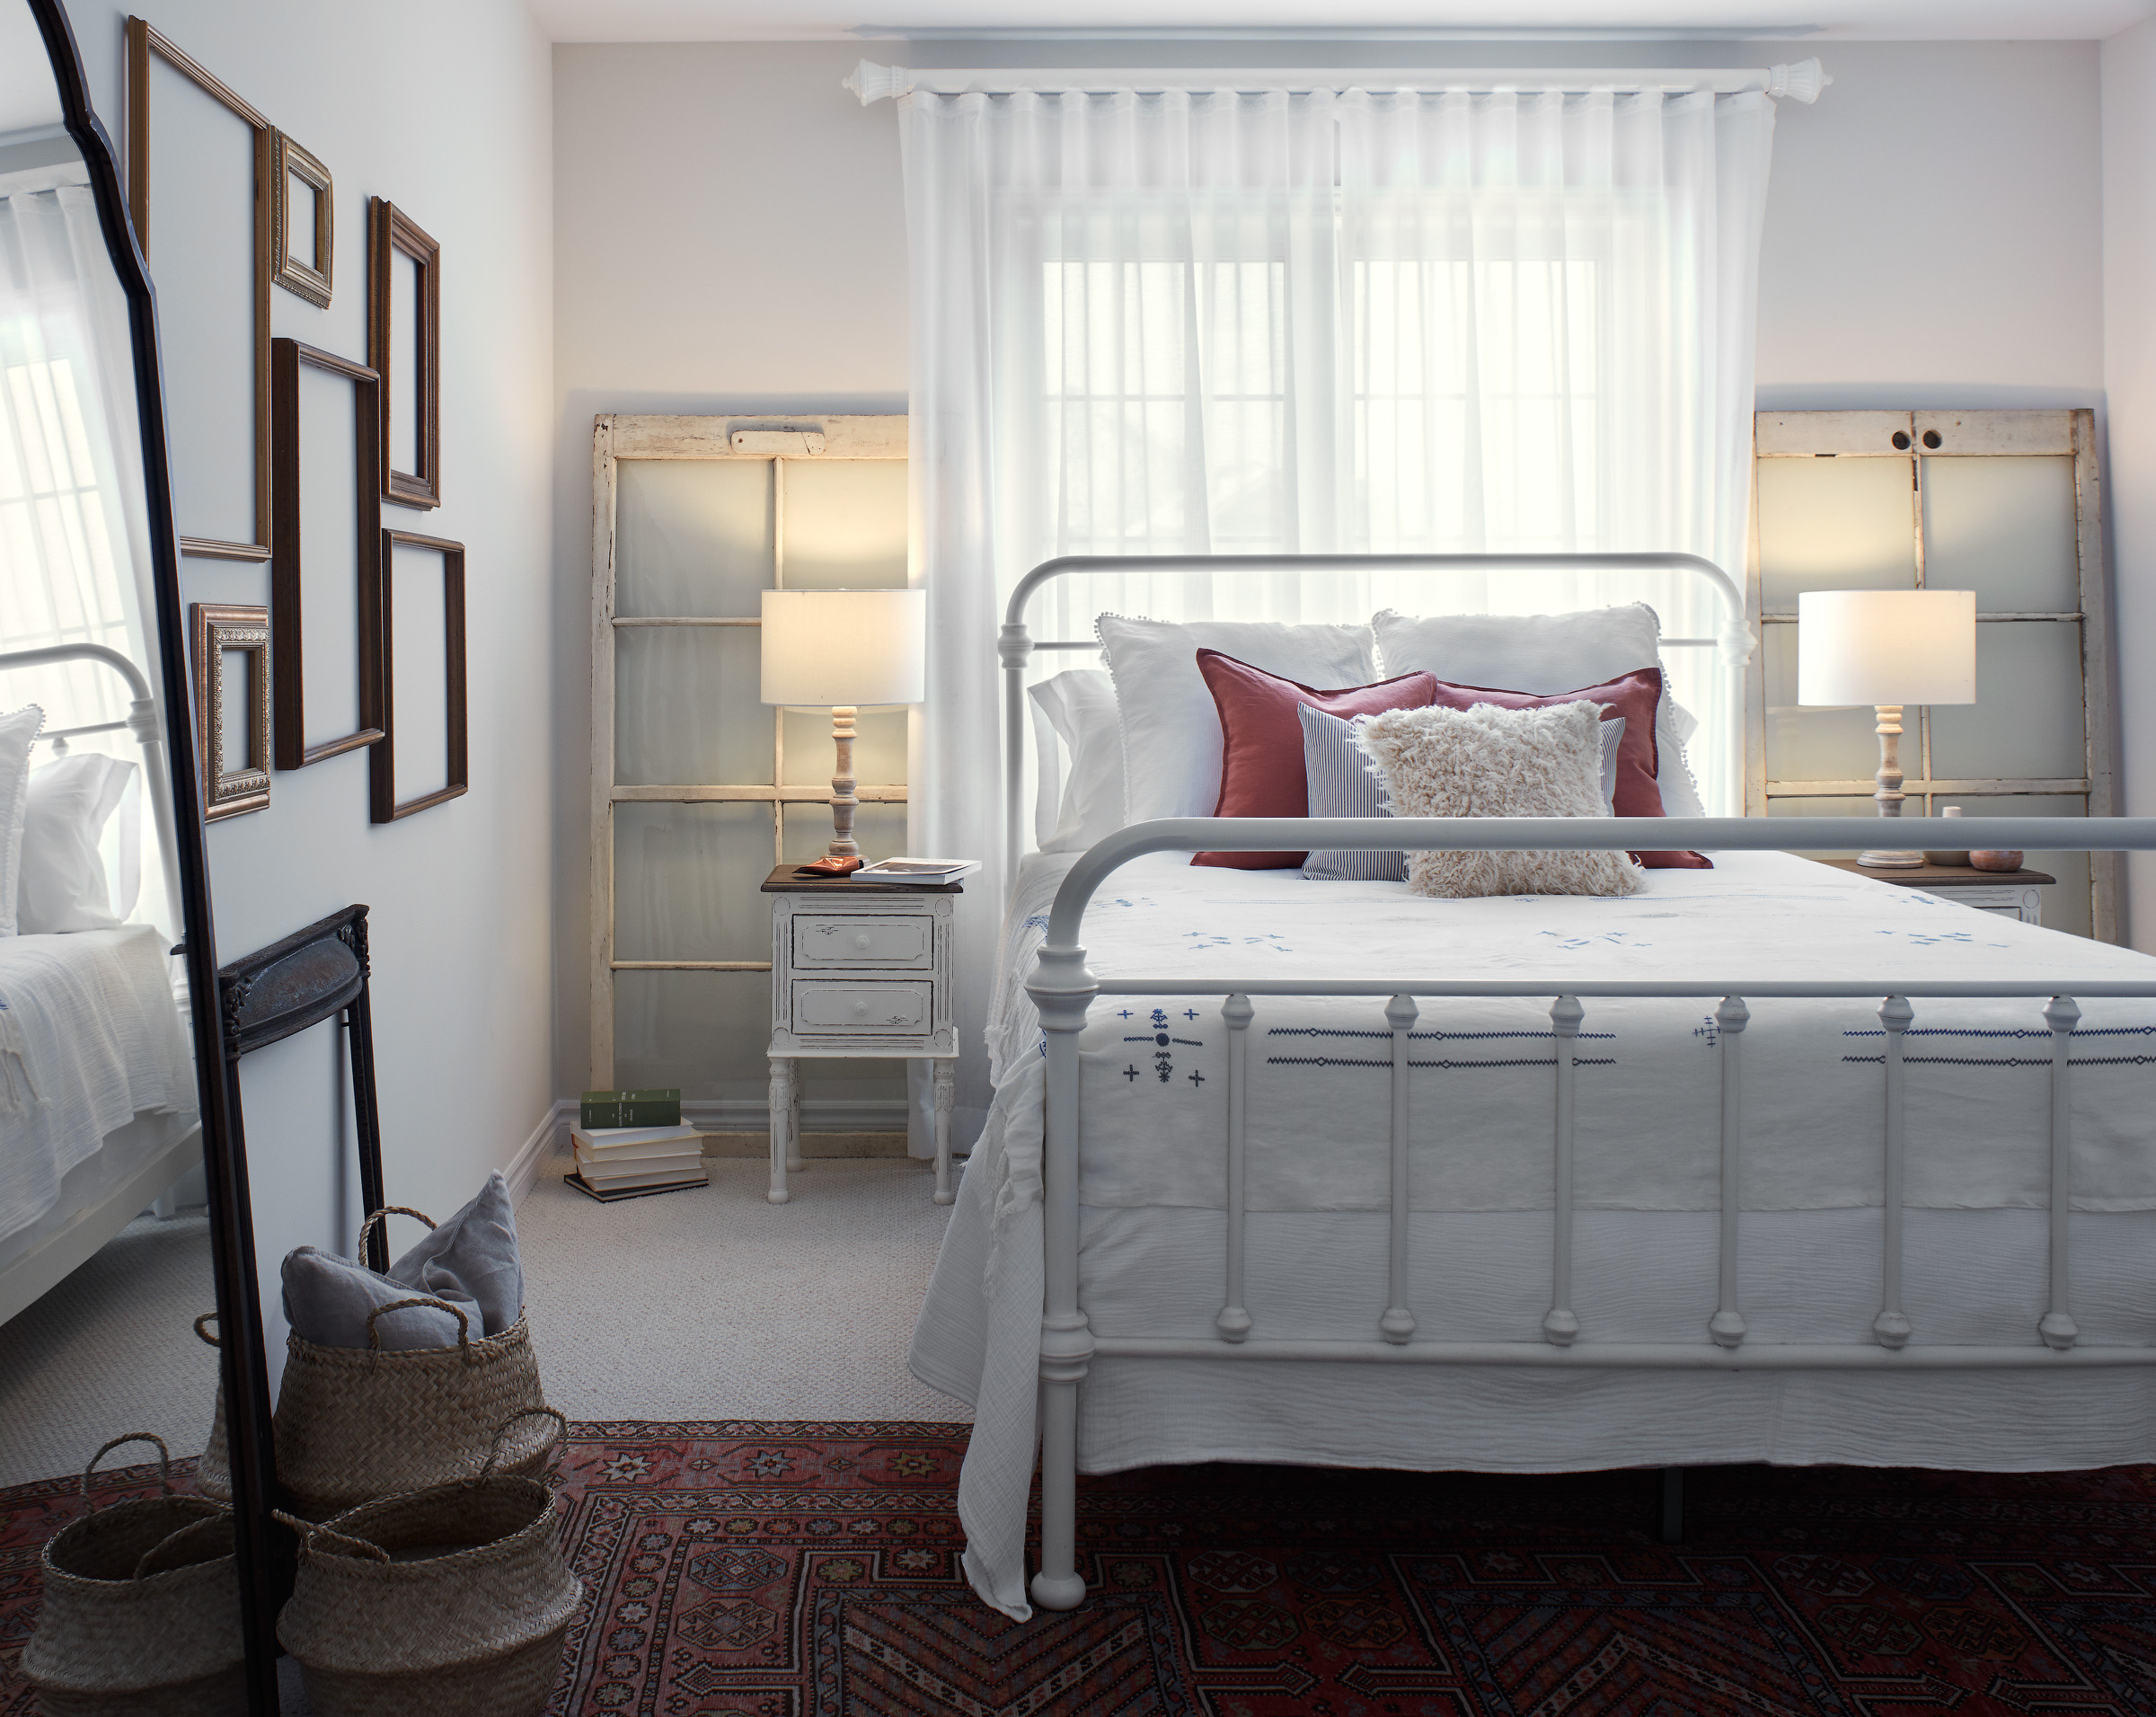 Shabby Chic bedroom with white metal bed, white bedding, and gallery wall with decorative frames